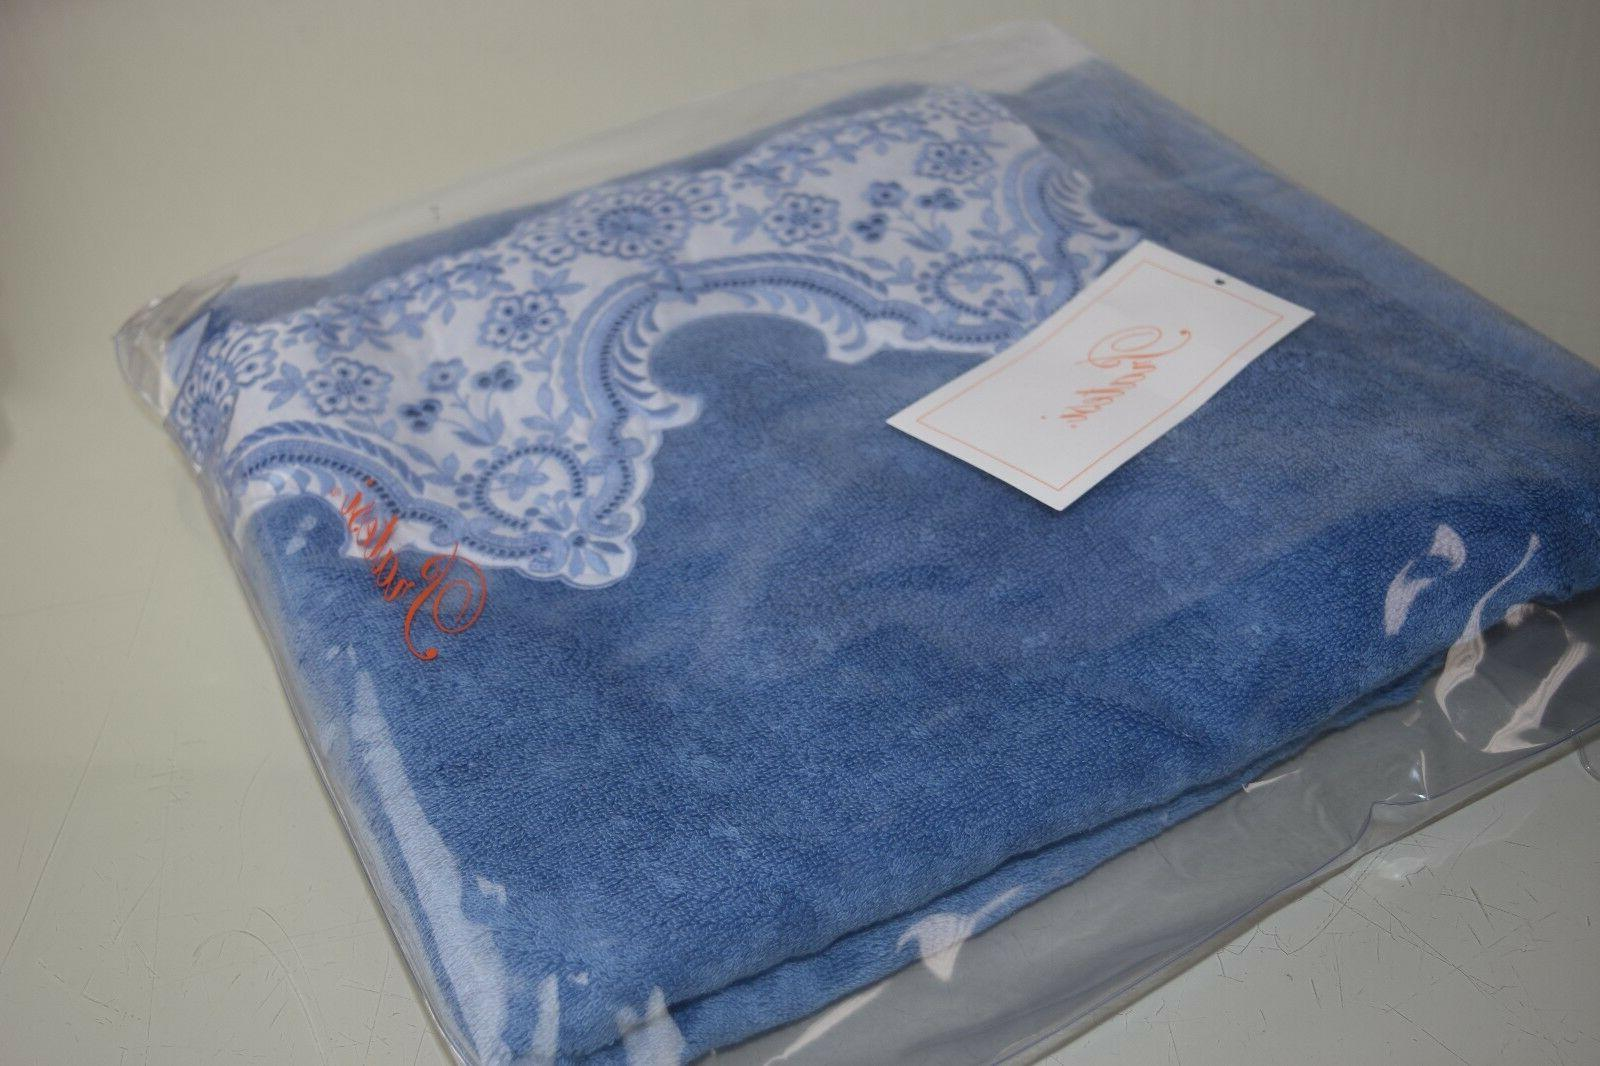 Pcs Luxury LOUVRE LACE Embroidered Blue